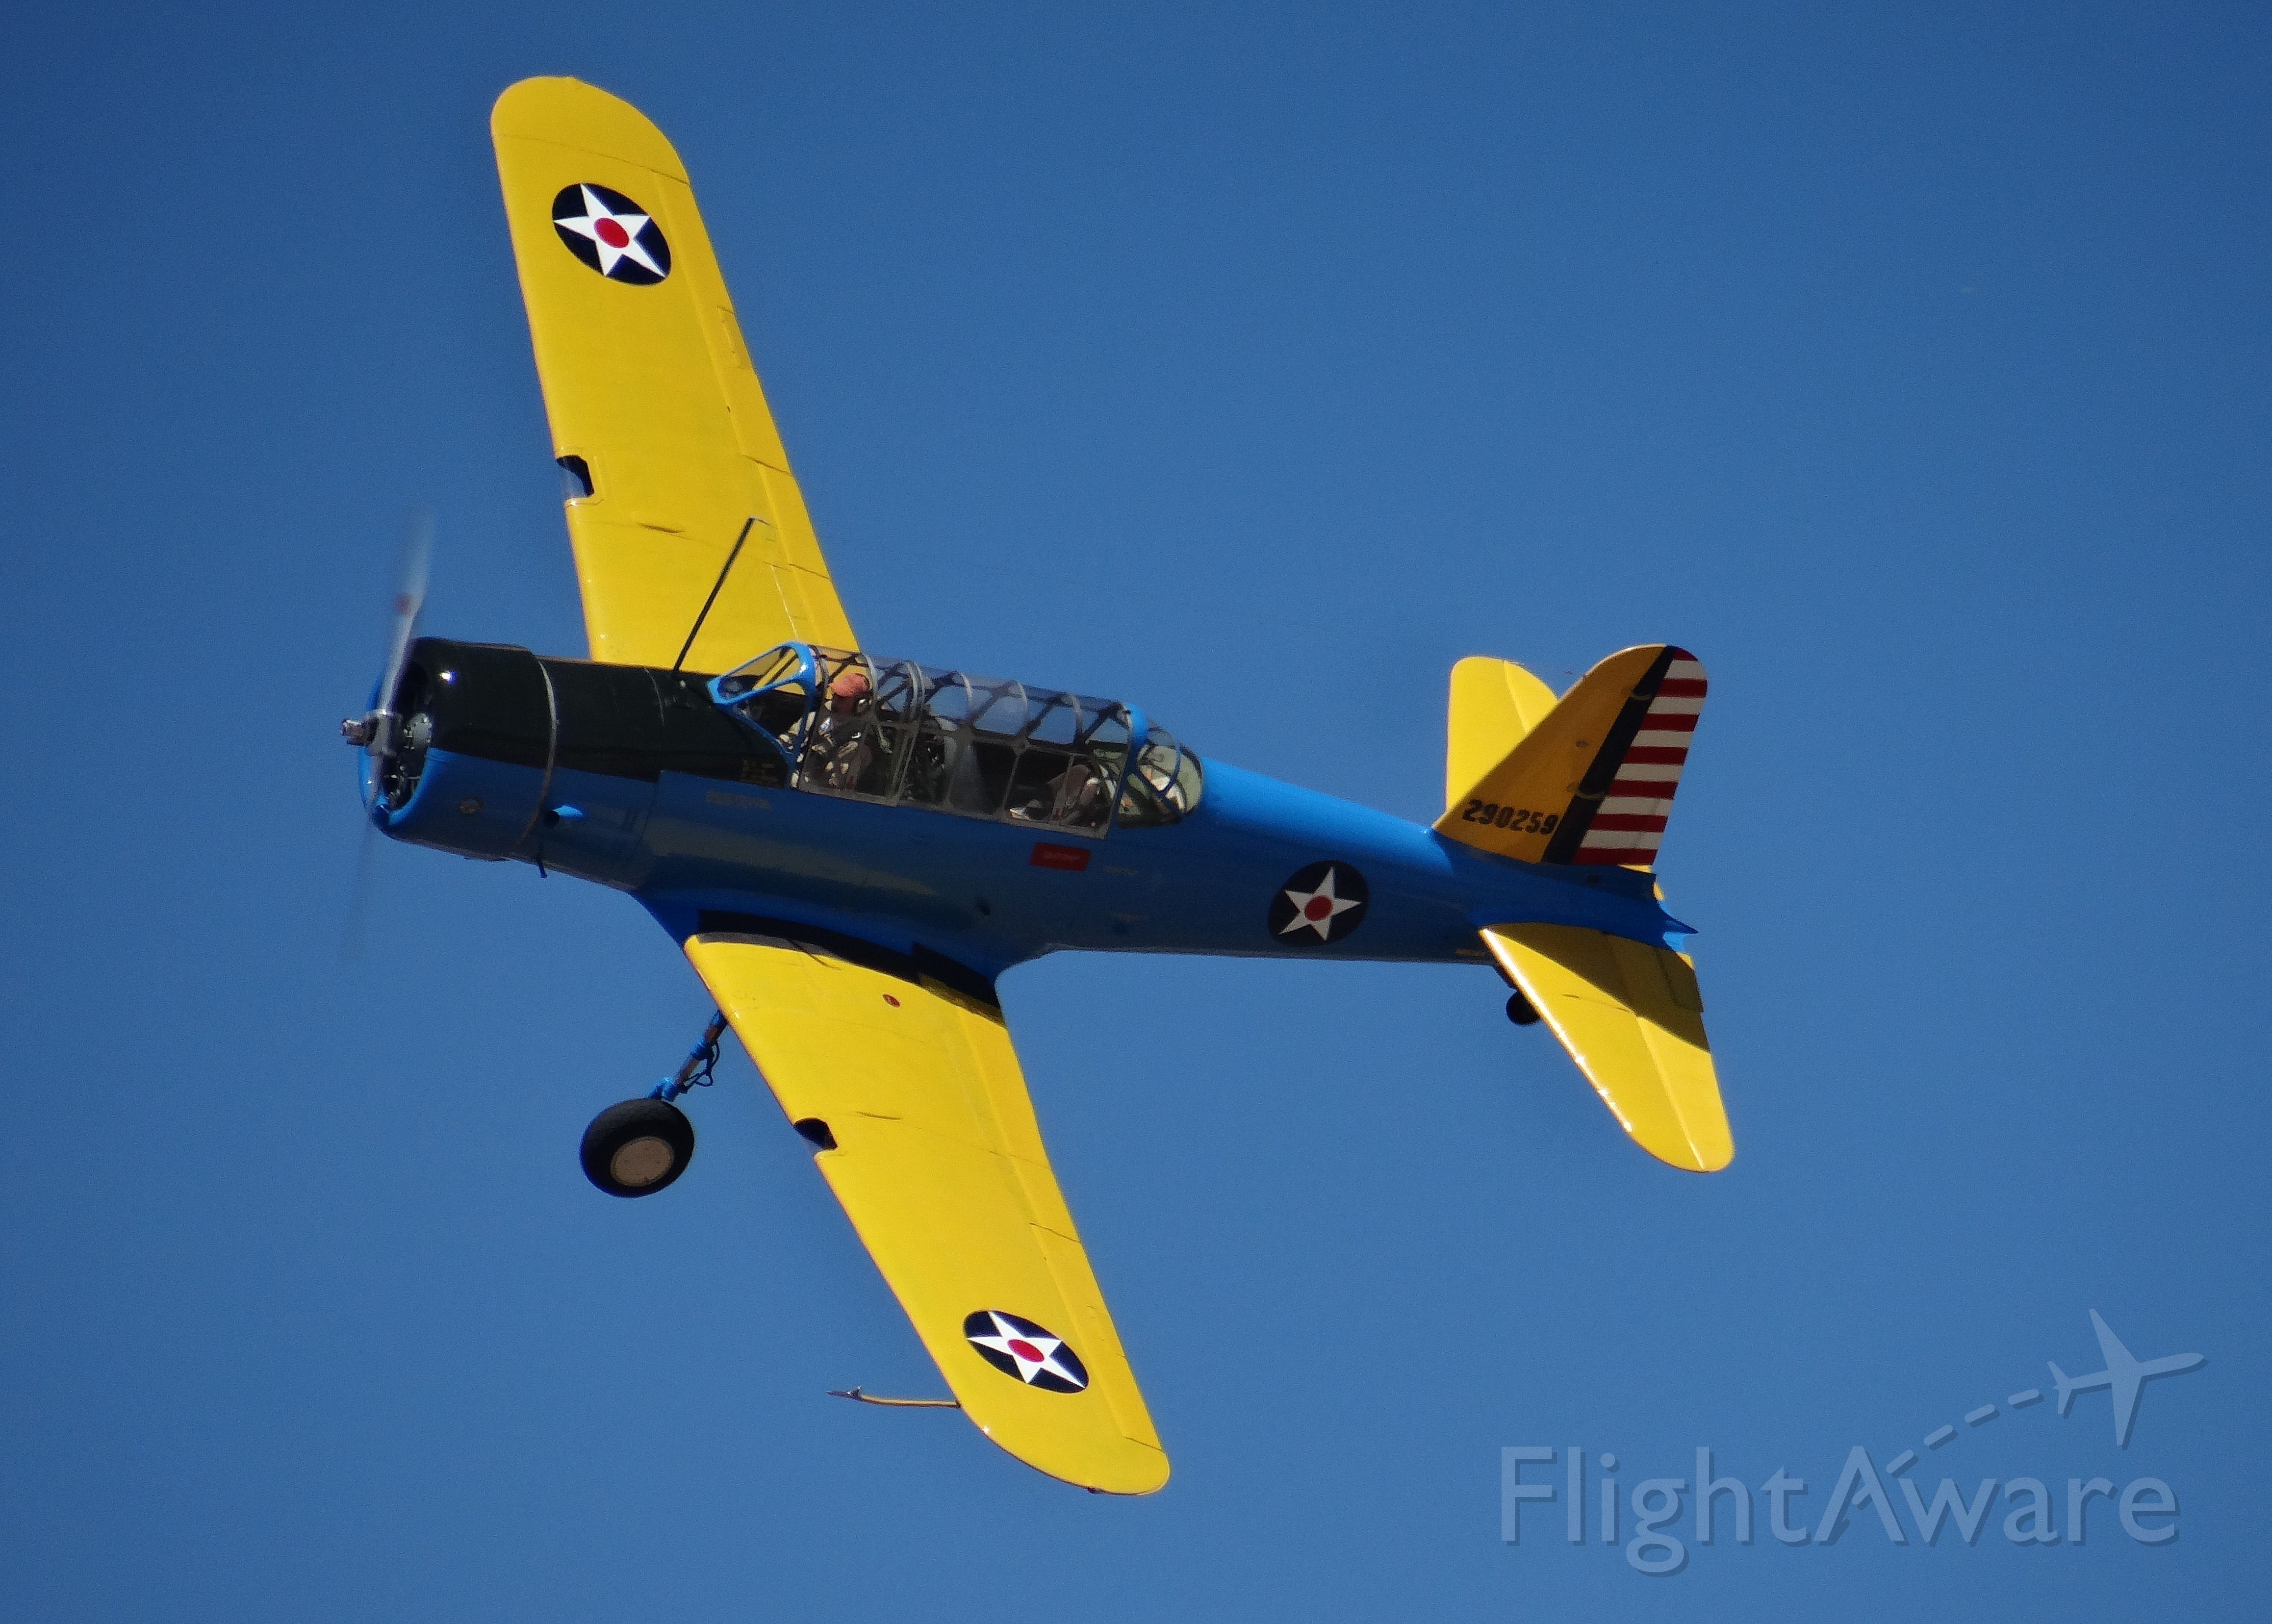 North American T-6 Texan (29-0259) - Nice warbird during the 2012 Watsonville Fly-In Air Show.